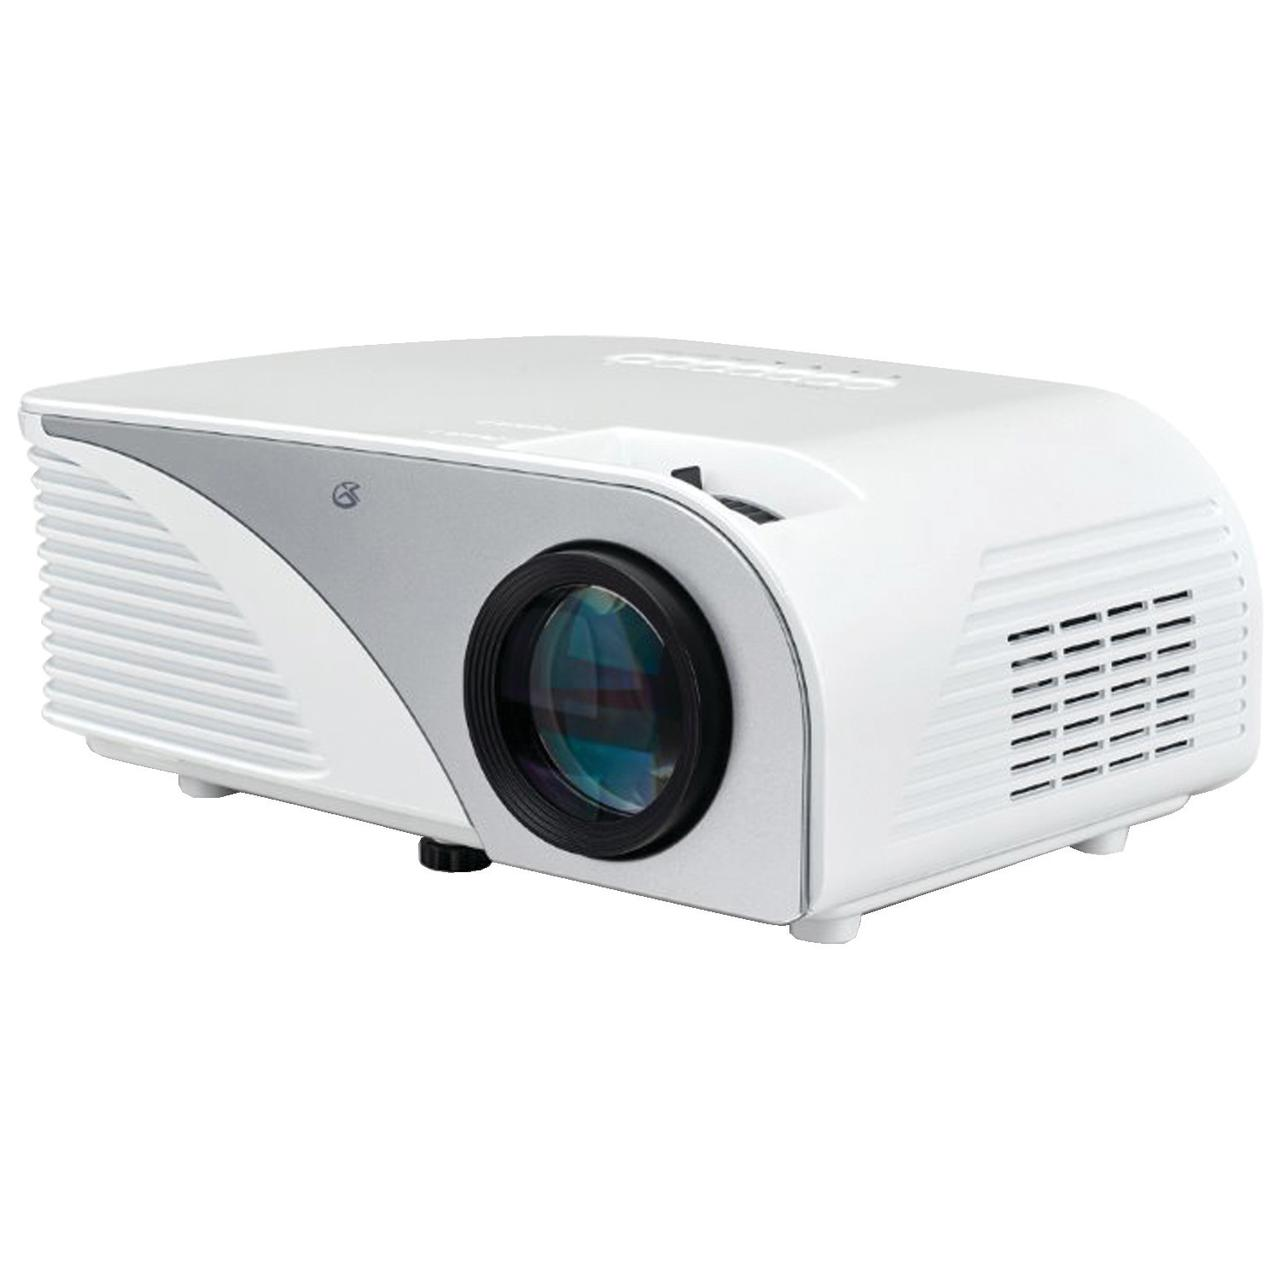 GPX PJ308W 1080p Mini Projector by GPX